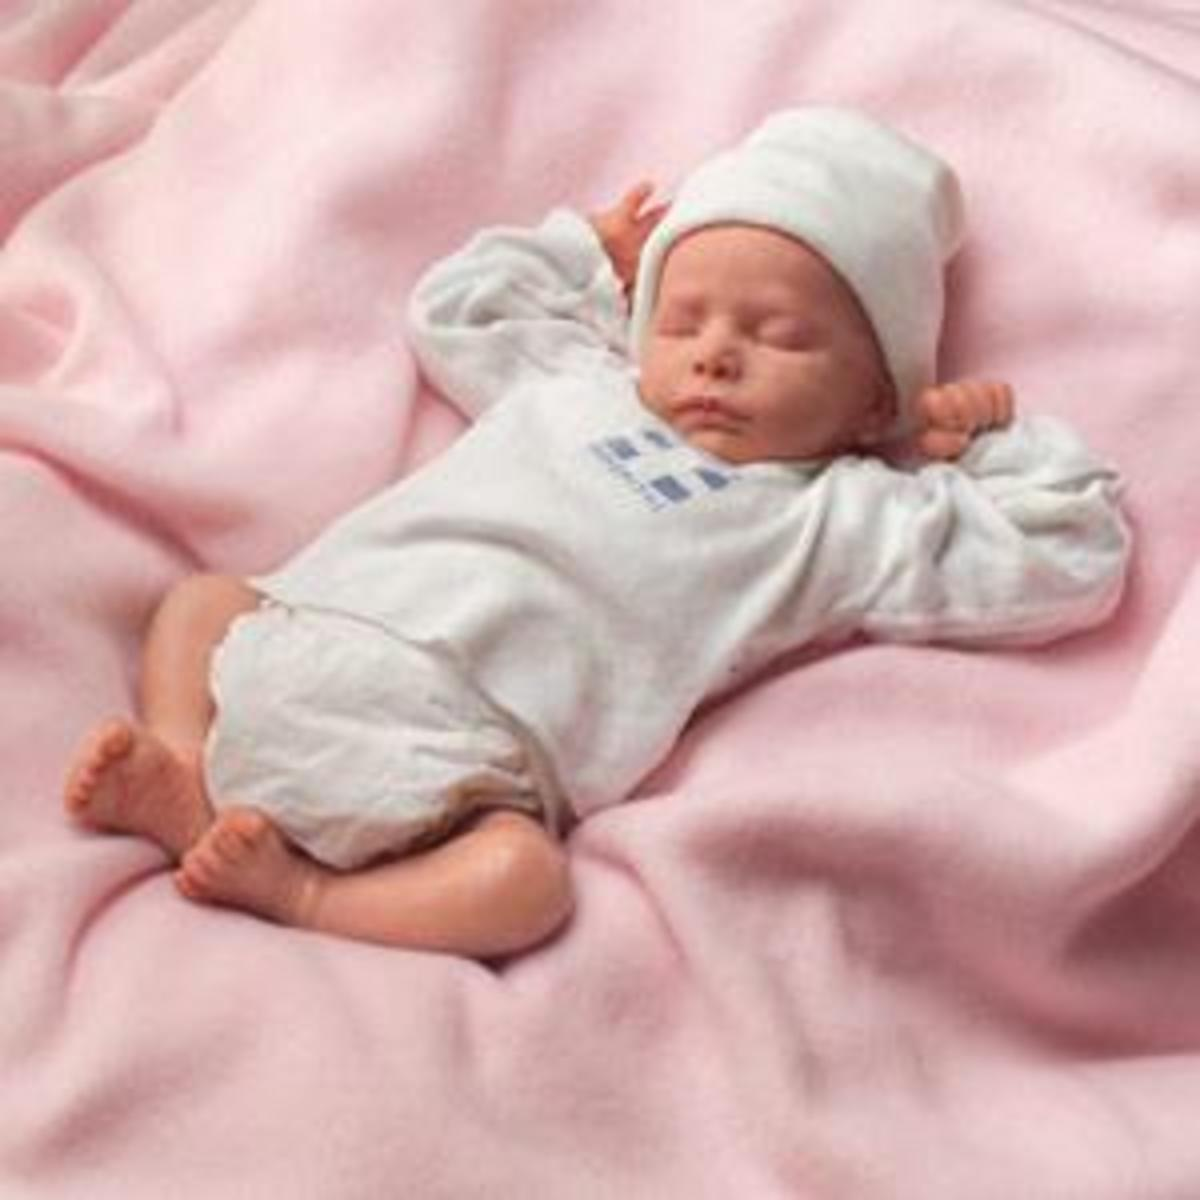 Are the Women who buy these realistic baby dolls normal ...